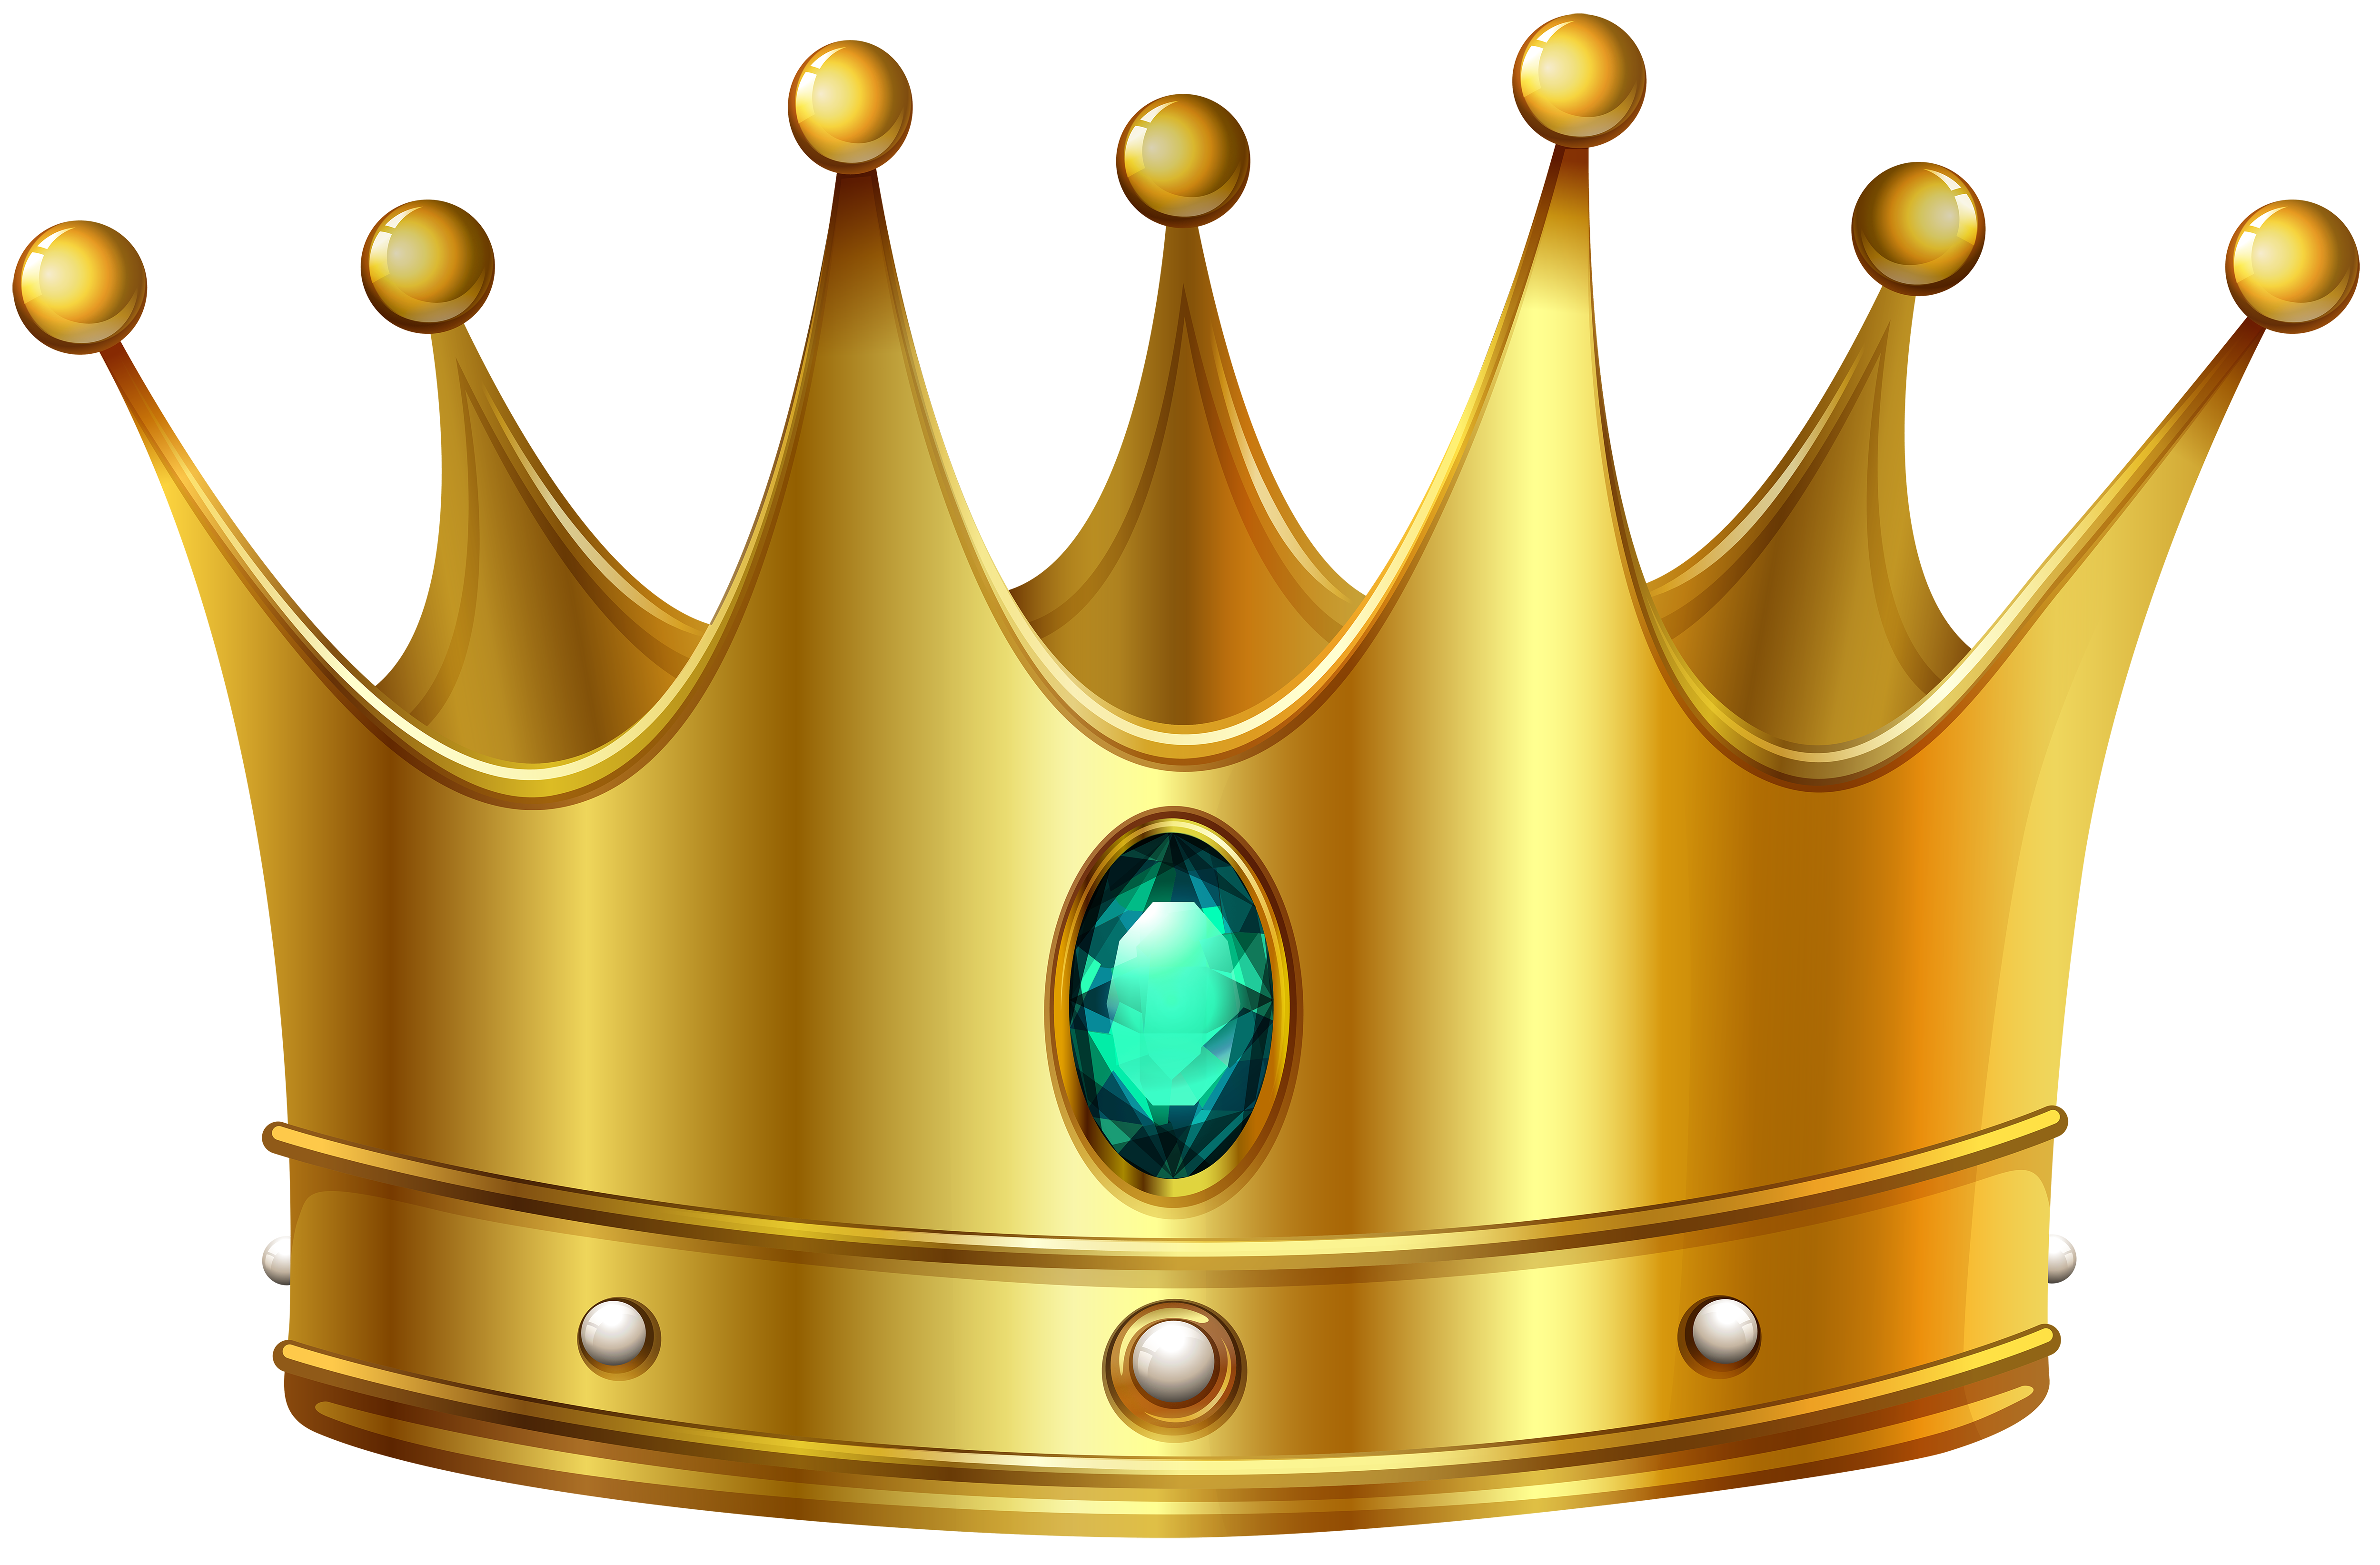 5000x3287 Gold Crown Clipart Cliparts And Others Art Inspiration